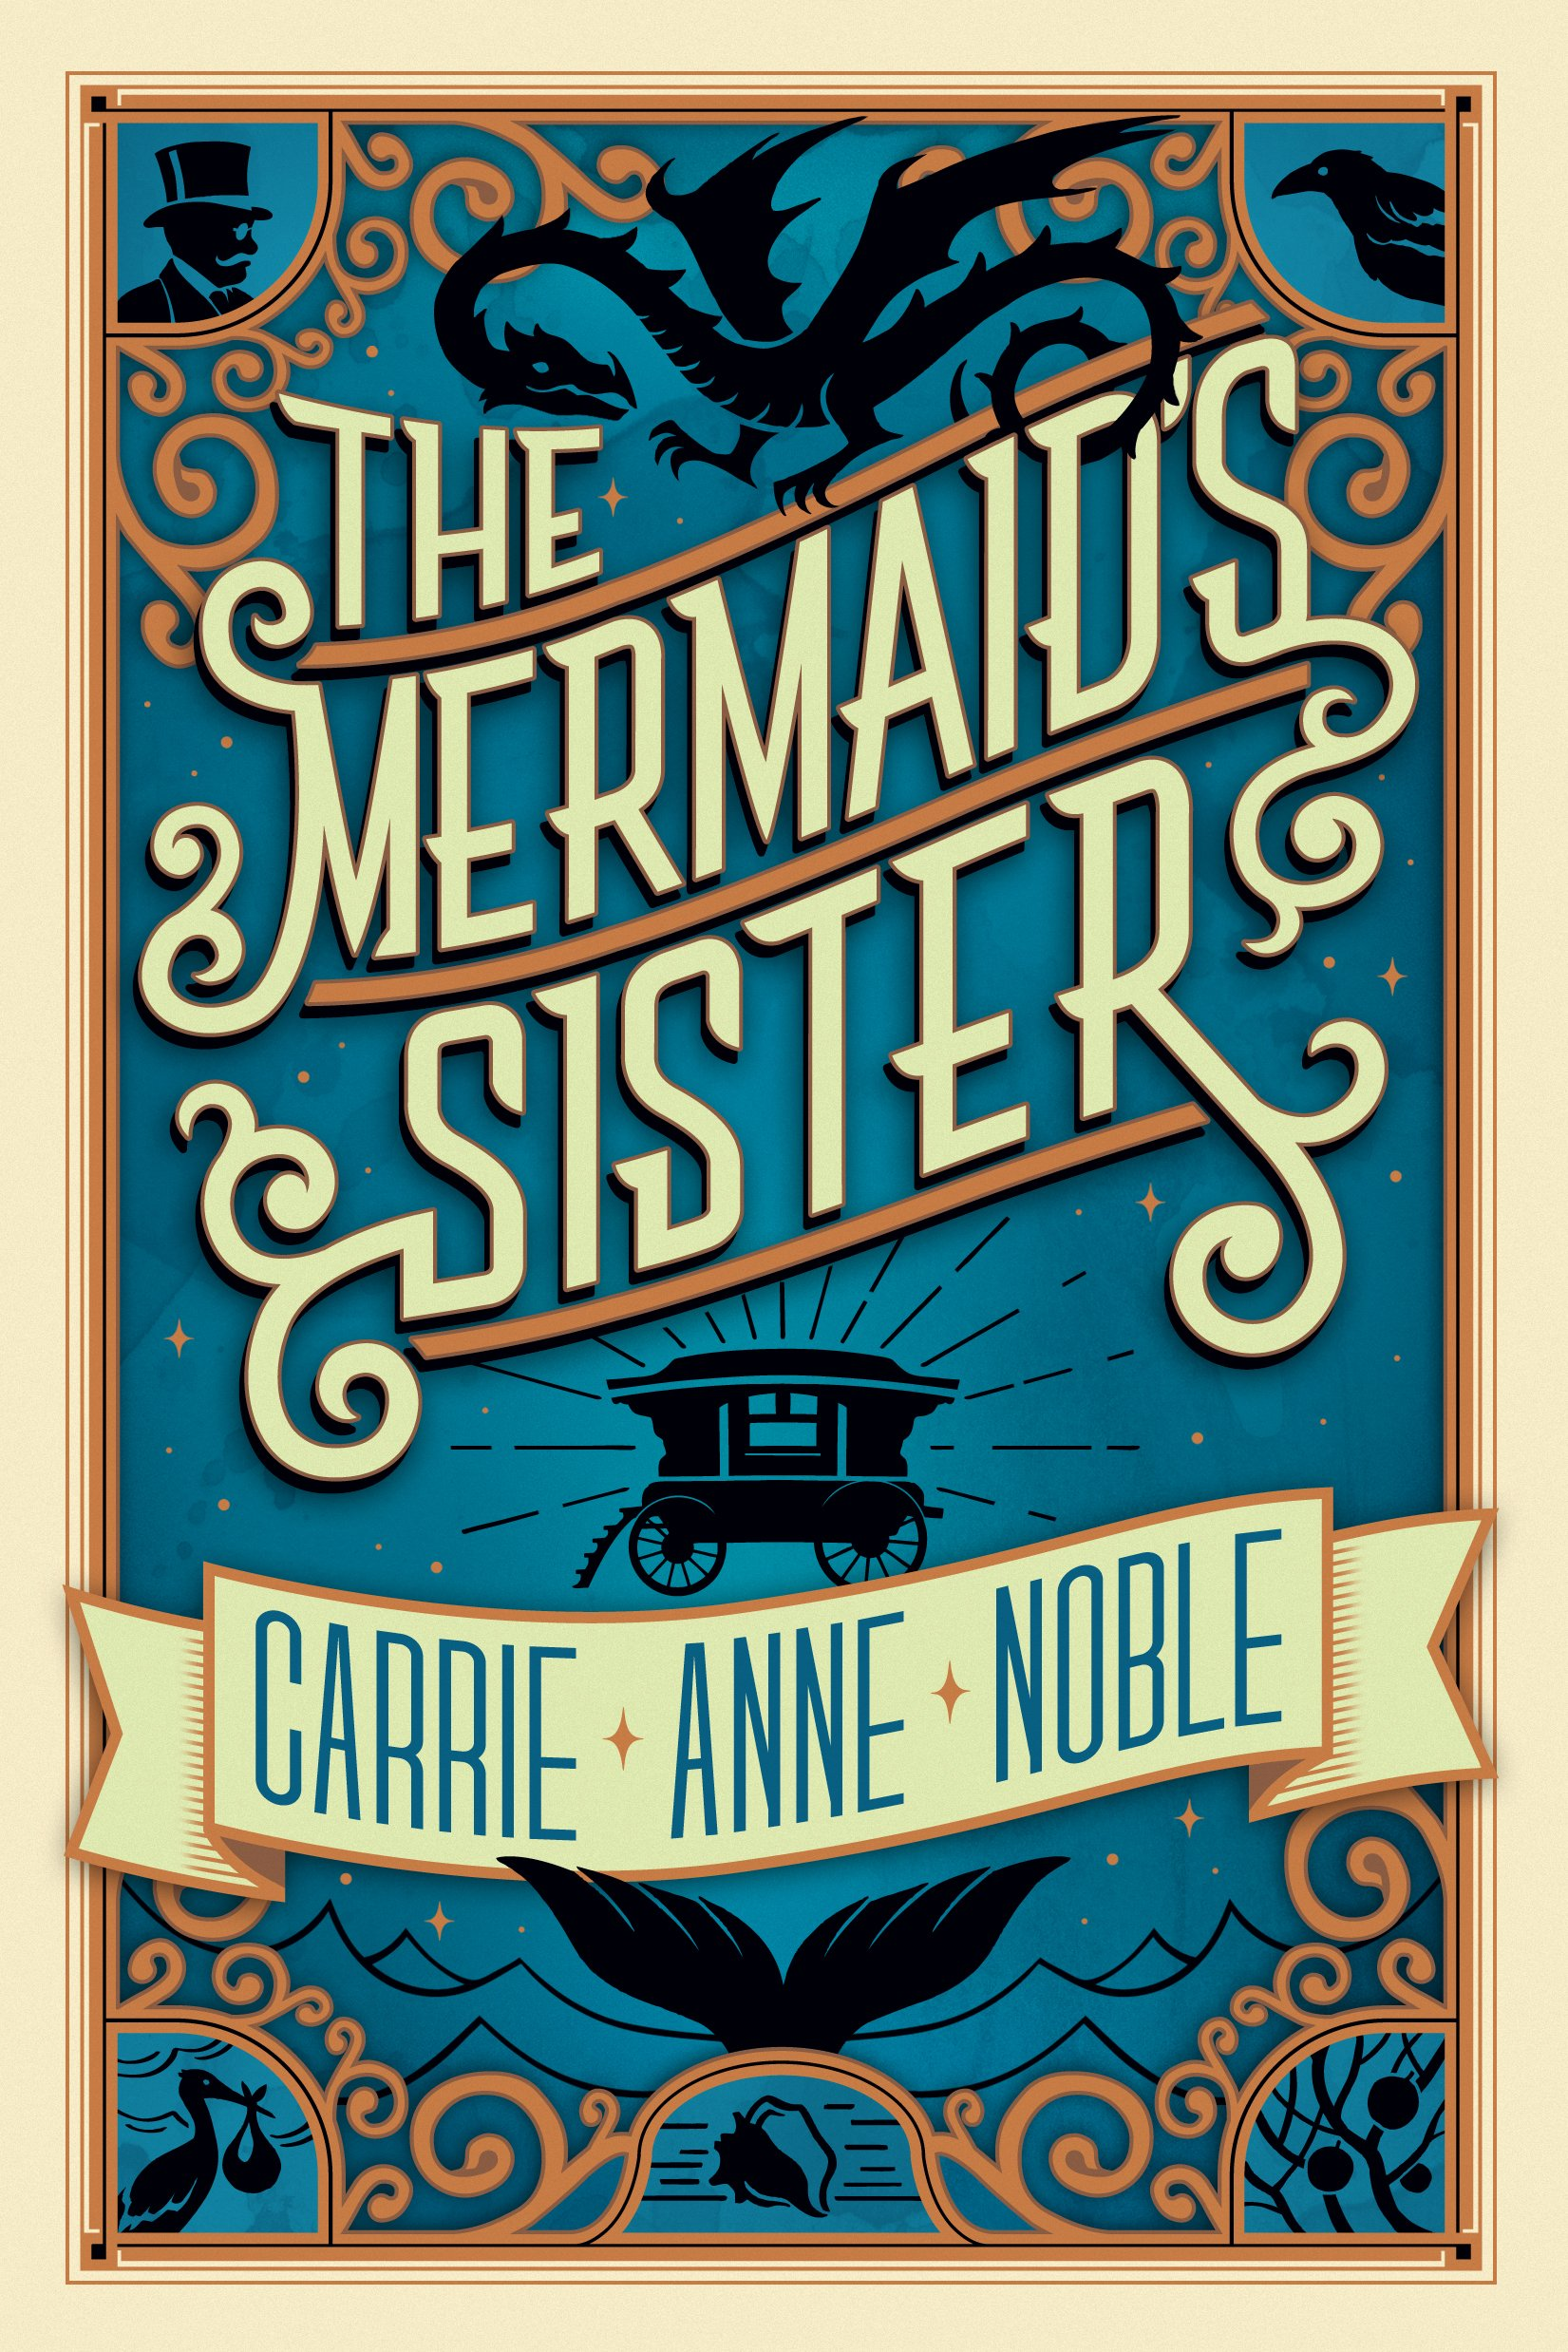 Mermaids Sister Carrie Anne Noble product image